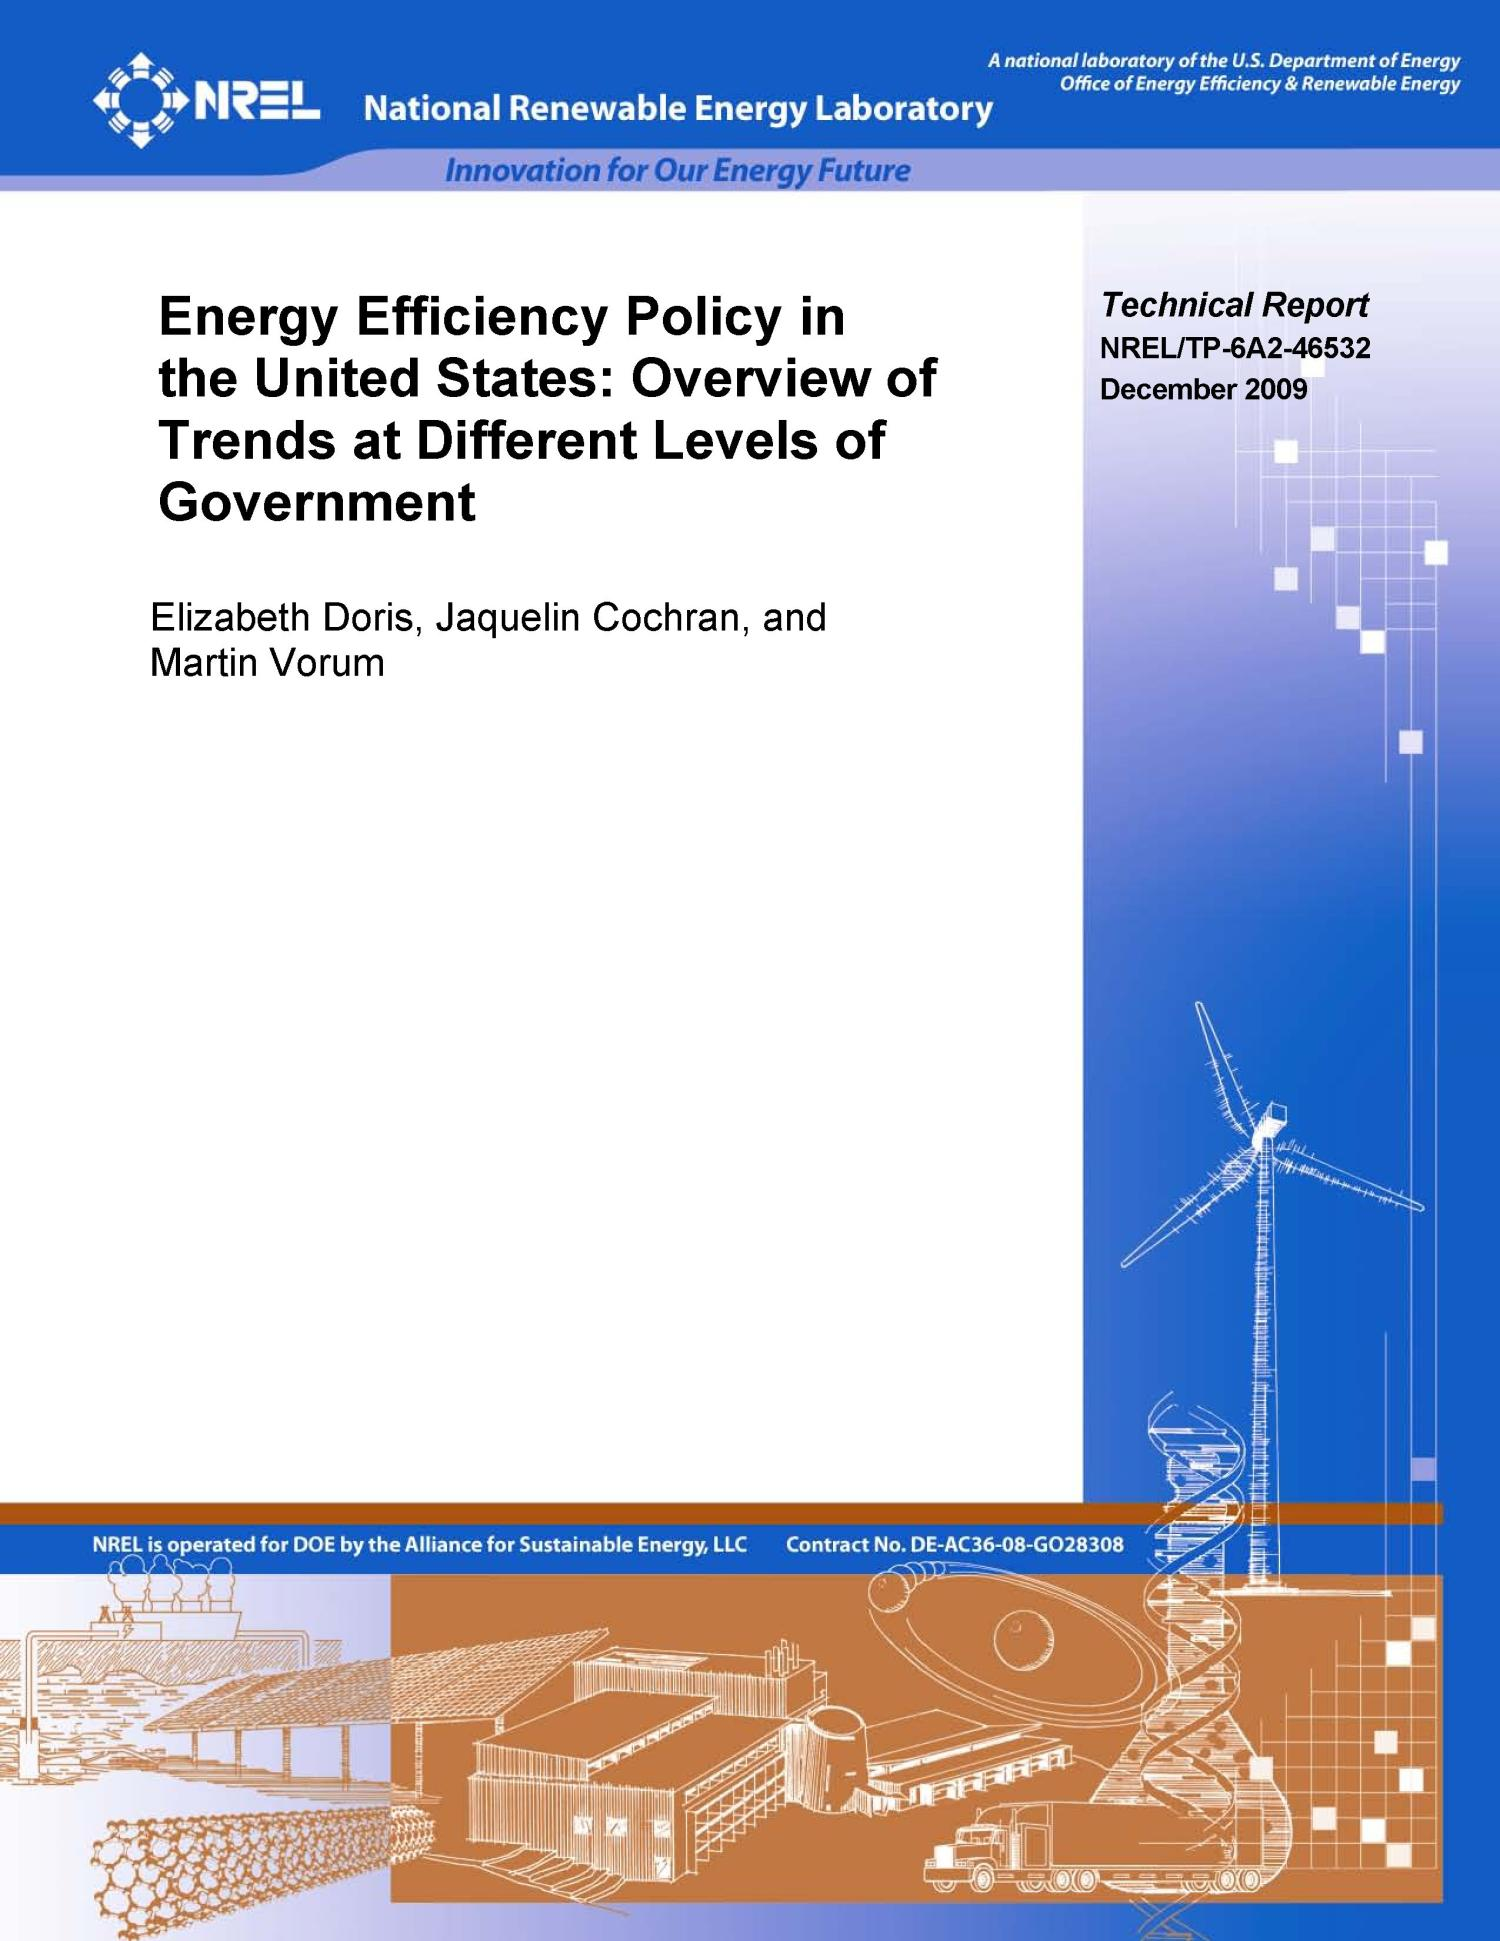 Energy Efficiency Policy in the United States: Overview of Trends at Different Levels of Government                                                                                                      [Sequence #]: 1 of 63